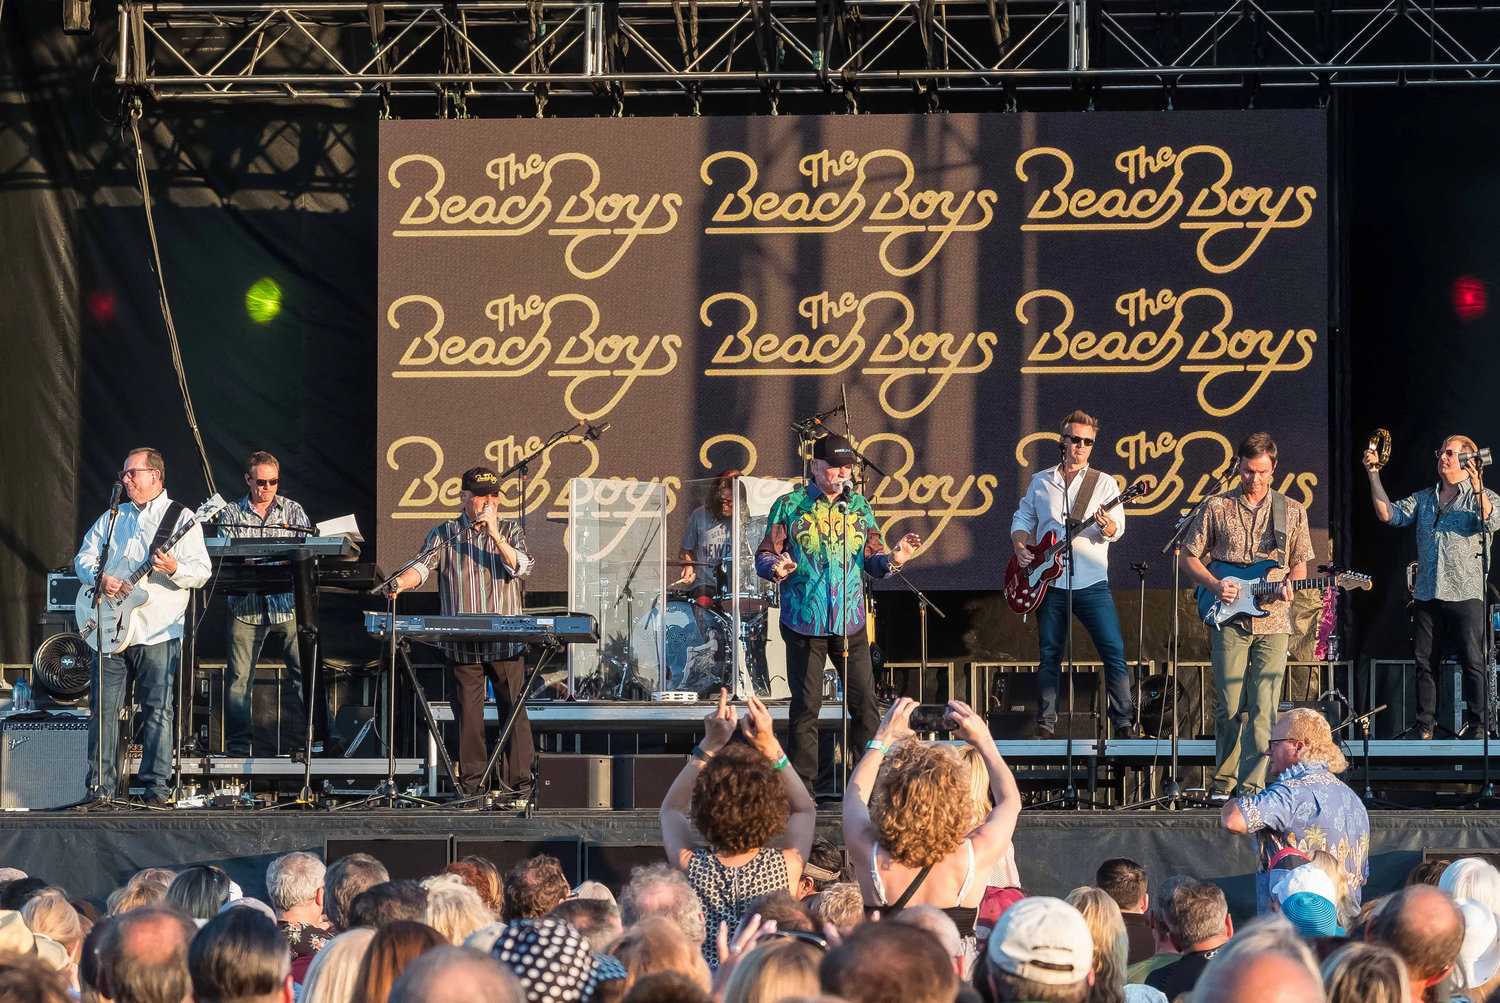 The Beach Boys perform